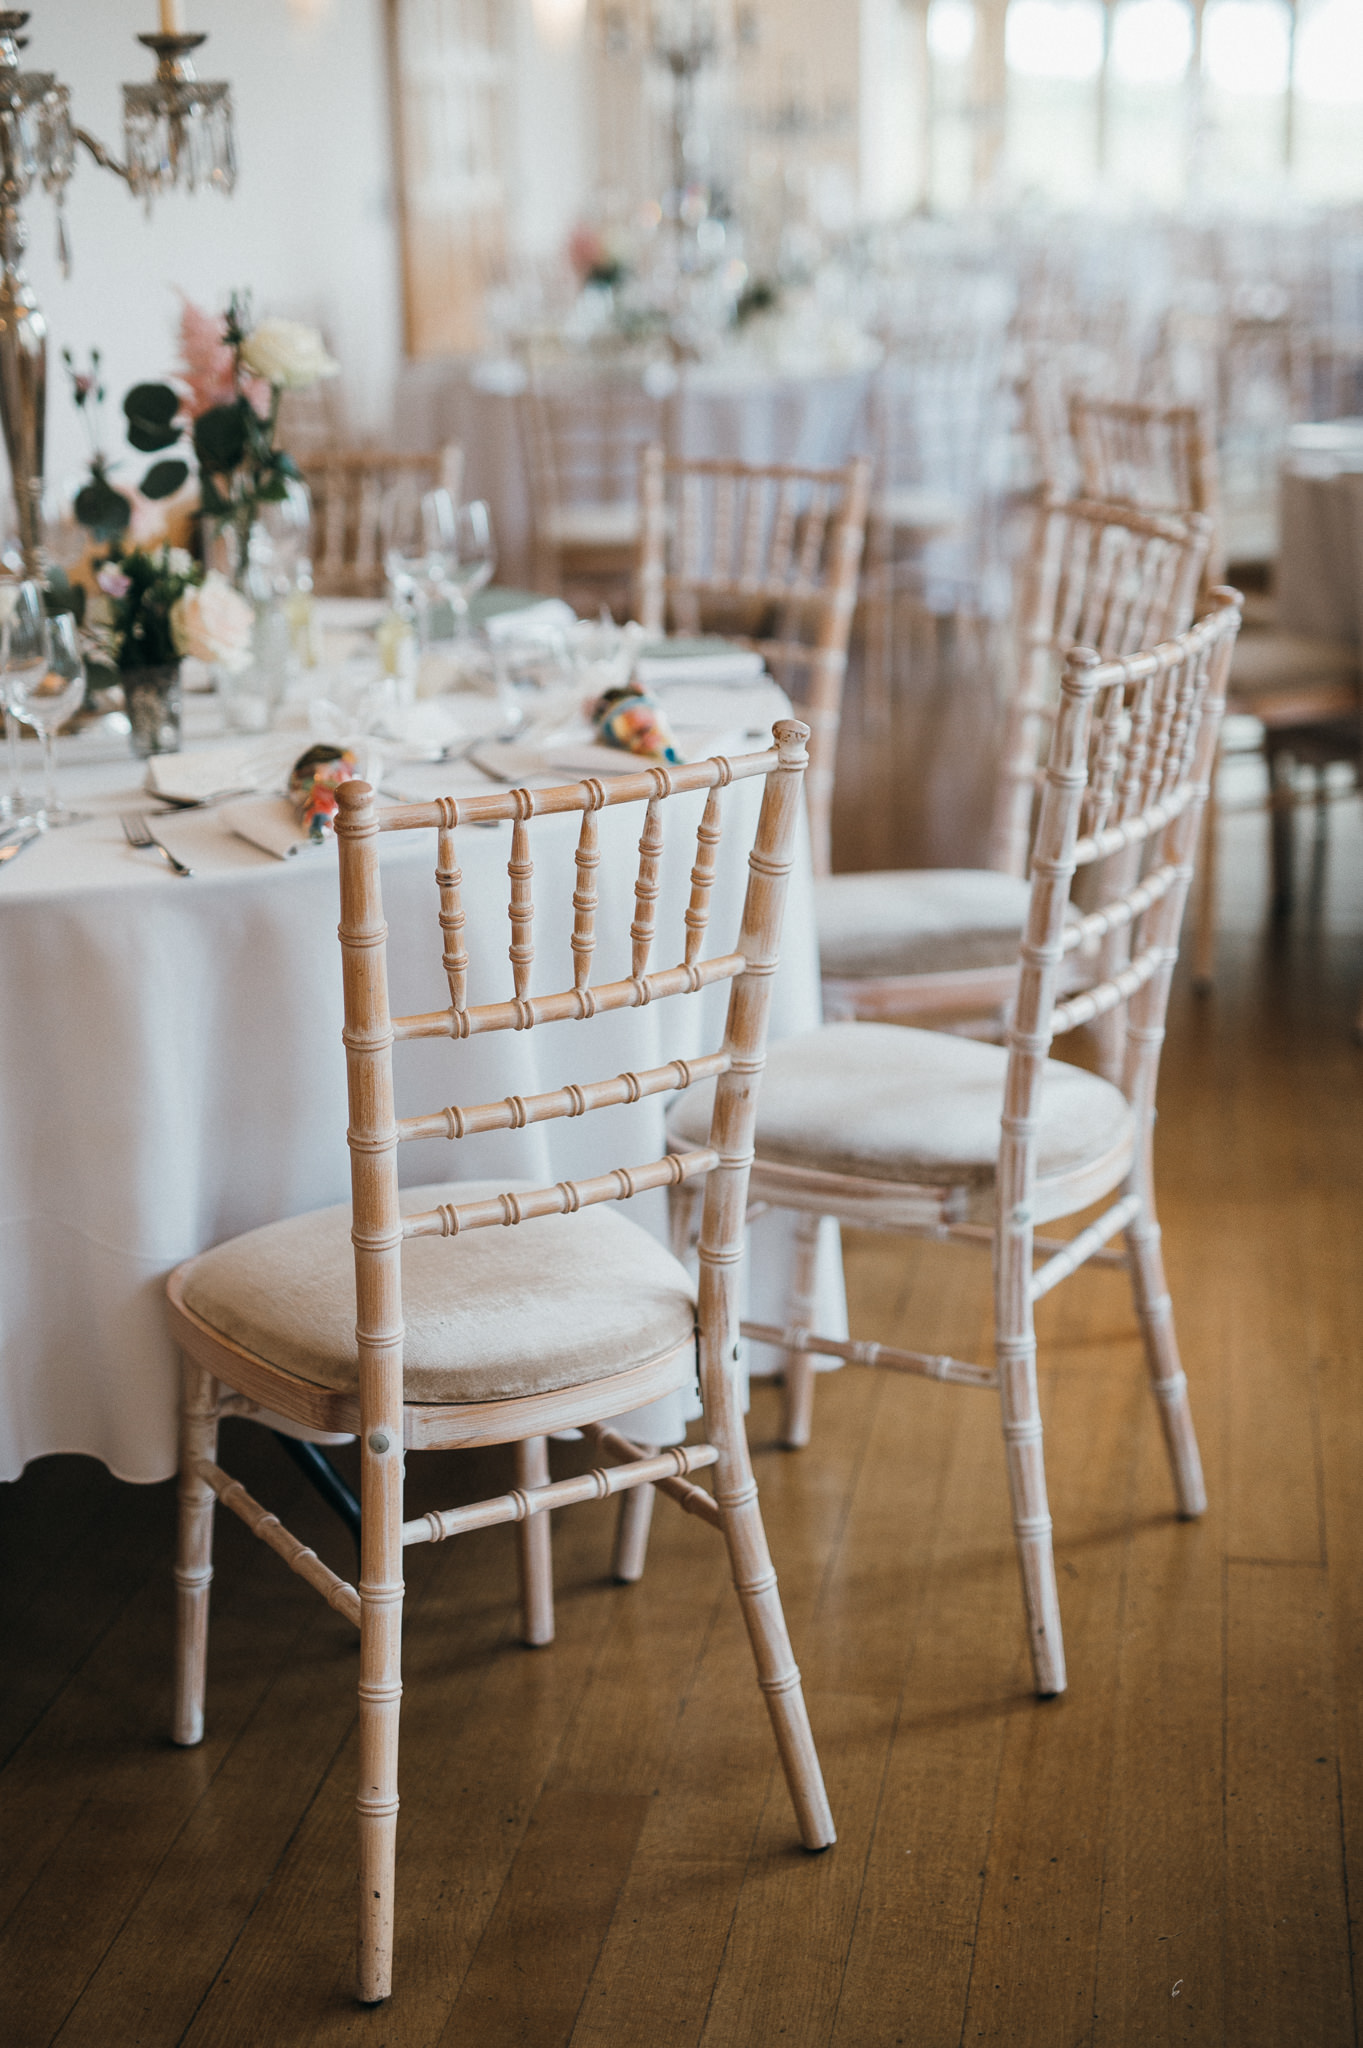 Wedding chairs Coombe Lodge Blagdon